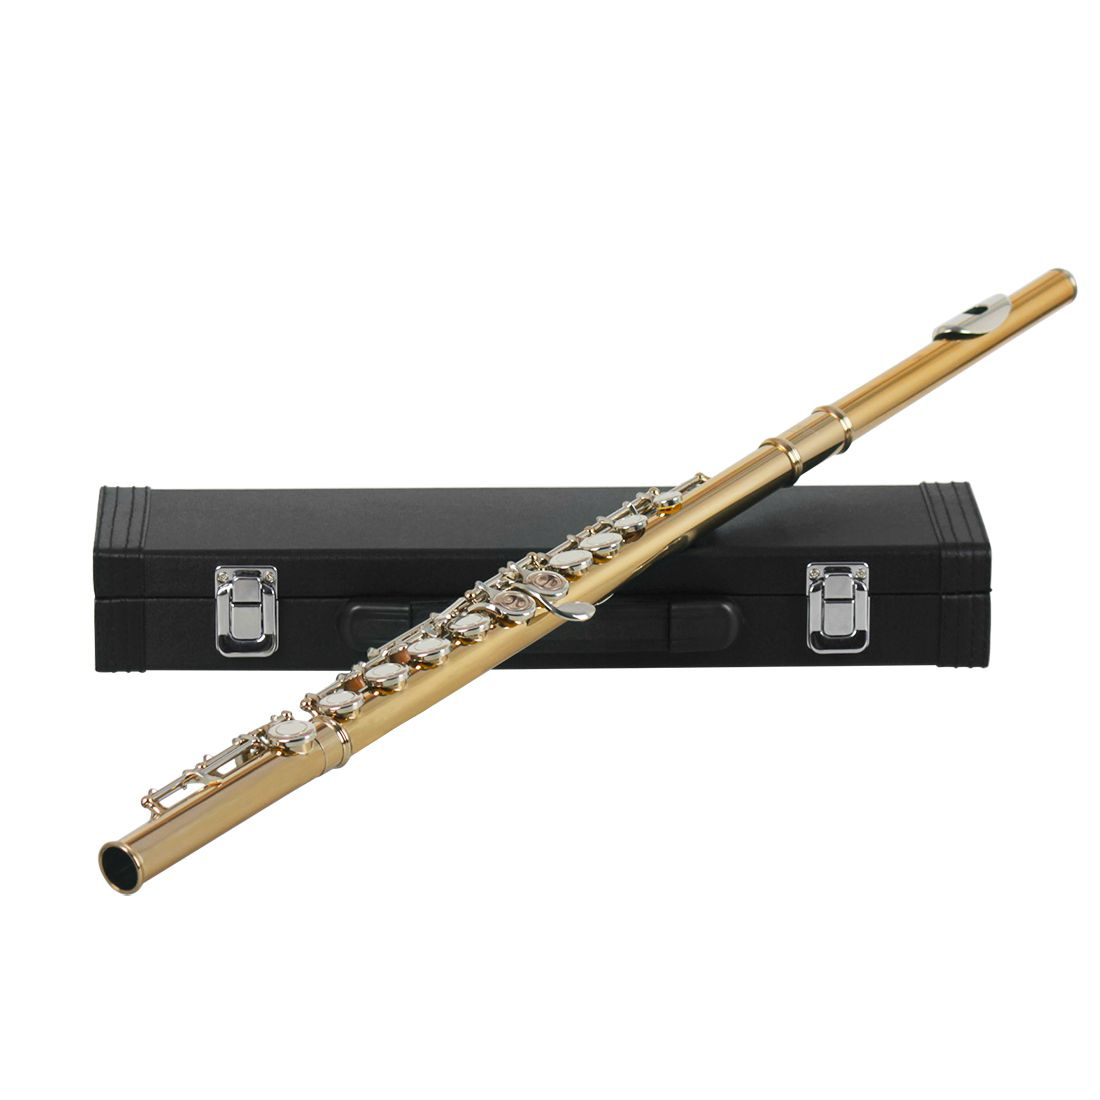 New Western Concert Flute 16 Holes C Key Cupronickel Musical Instrument with Cleaning Cloth Stick Gloves